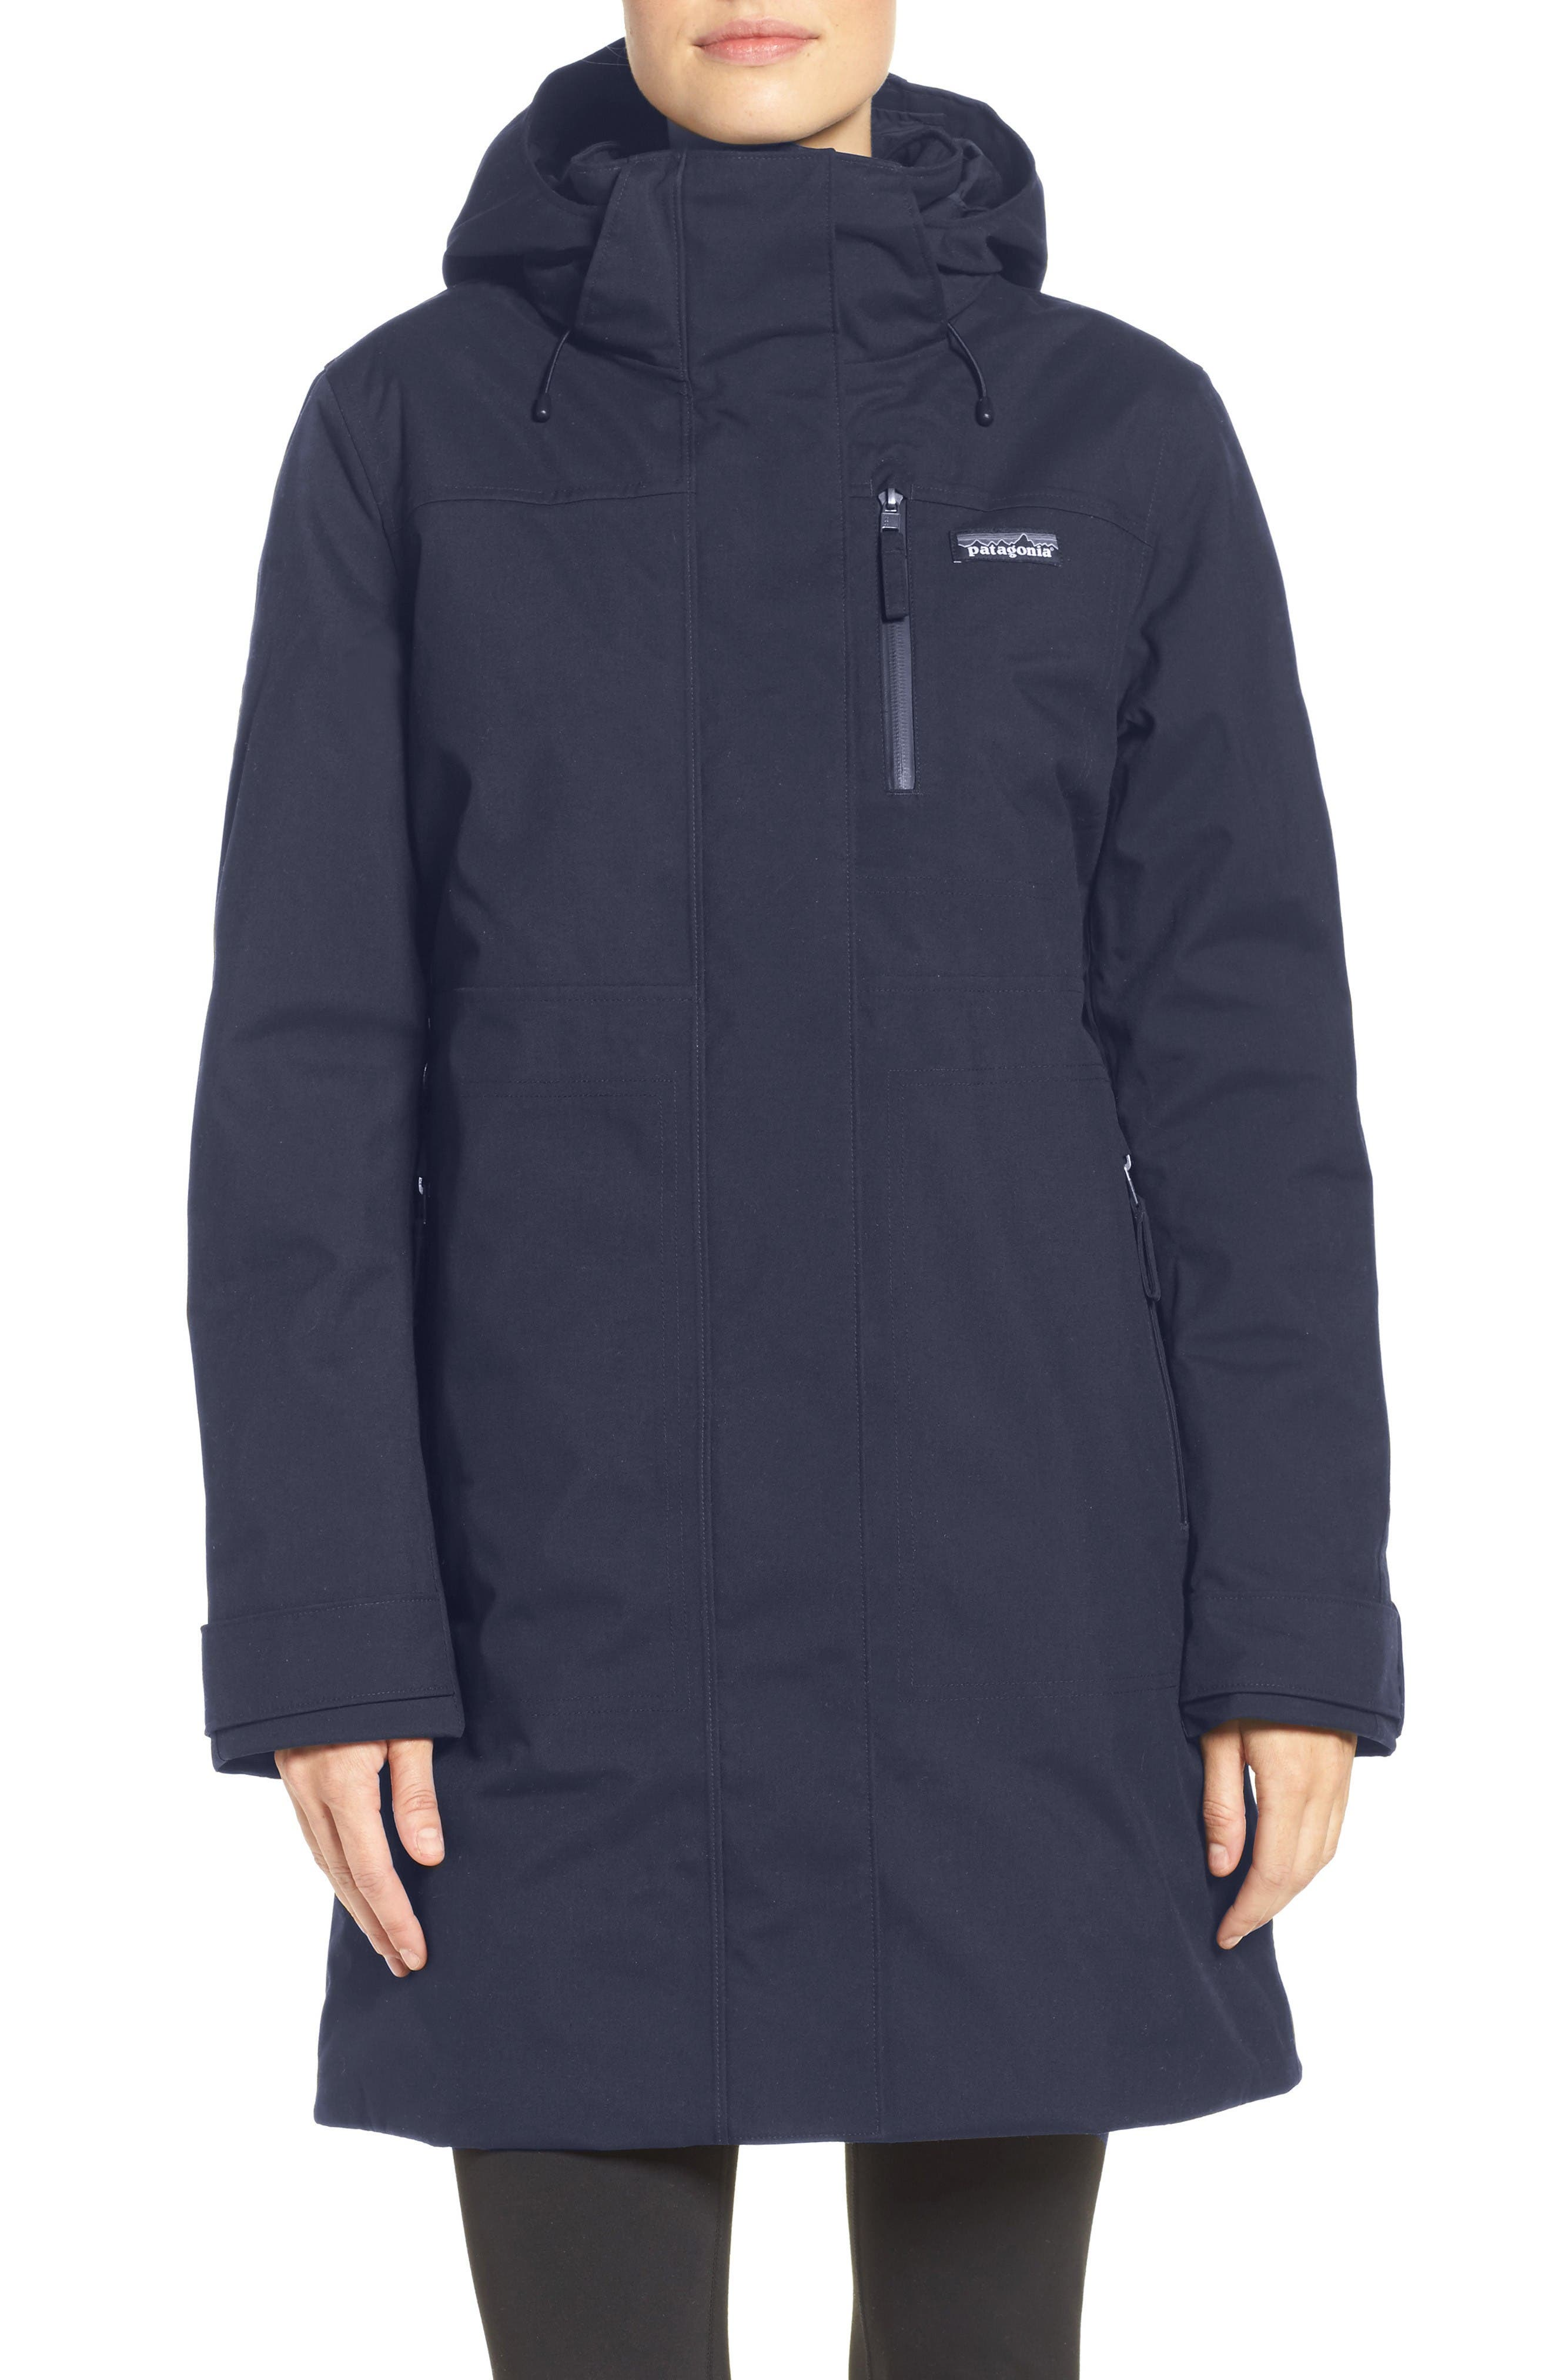 Main Image - Patagonia Stormdrift Waterproof Parka